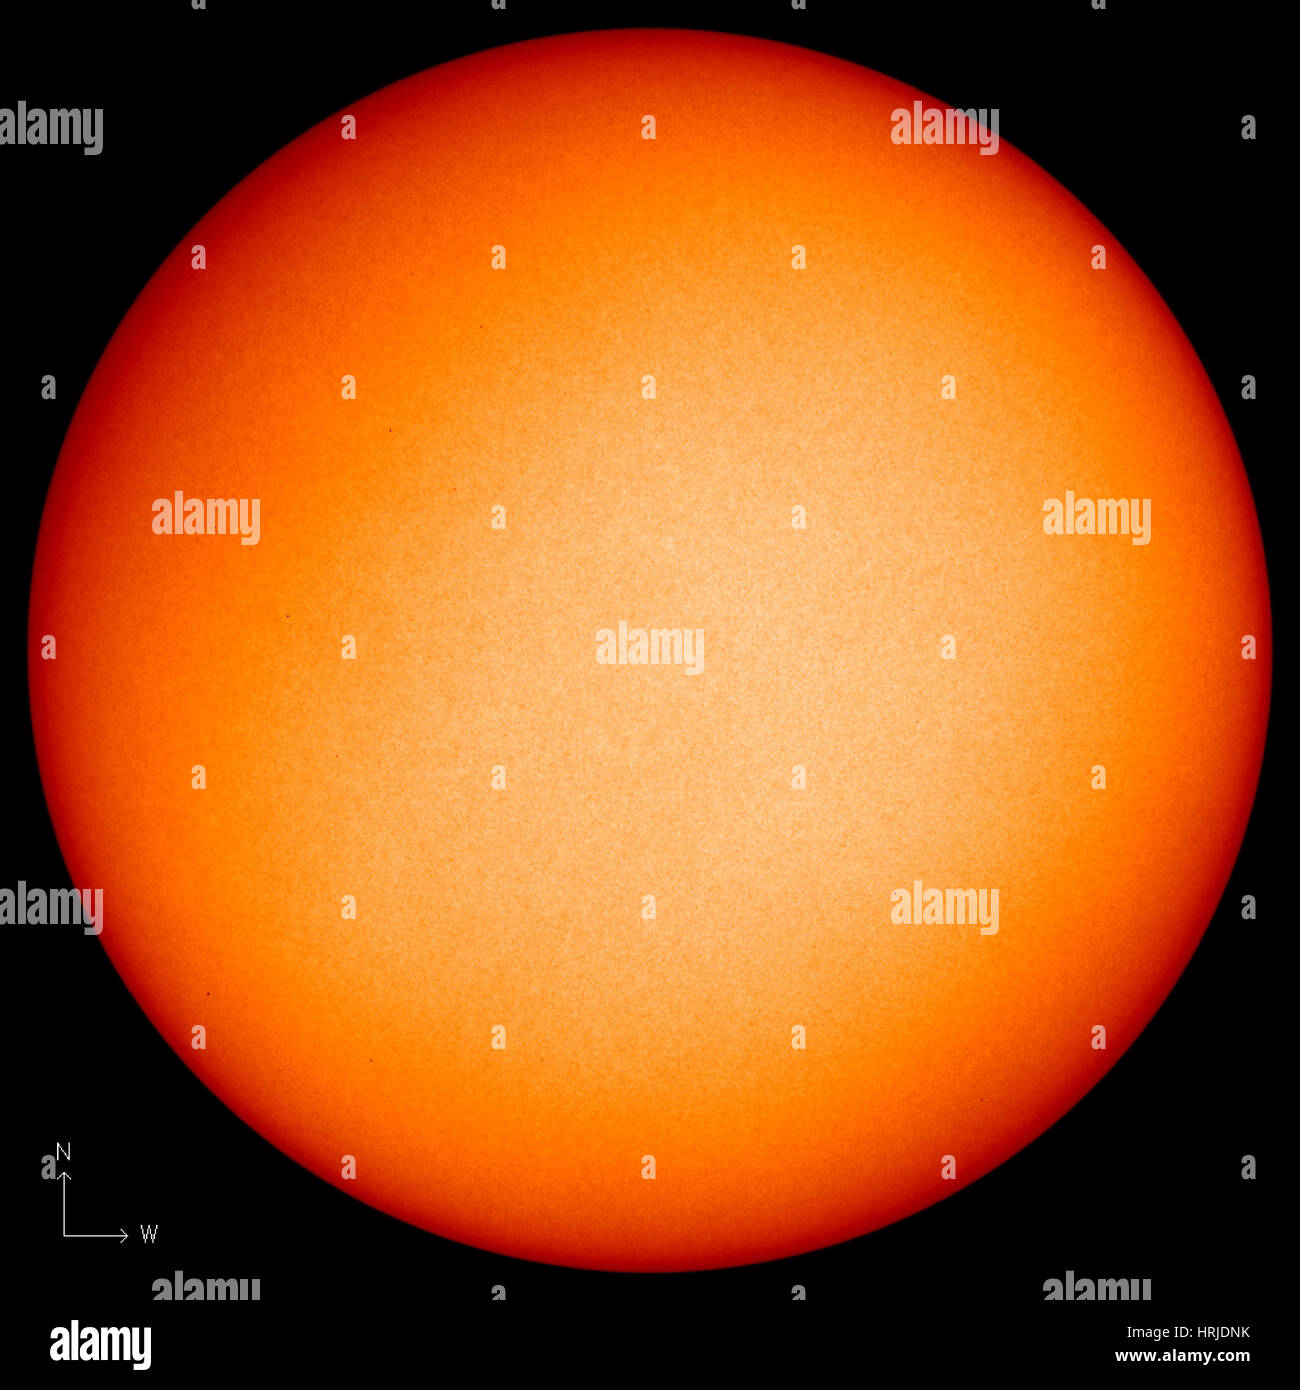 Sunspots, Solar Cycle 24, EIT, 2009 - Stock Image